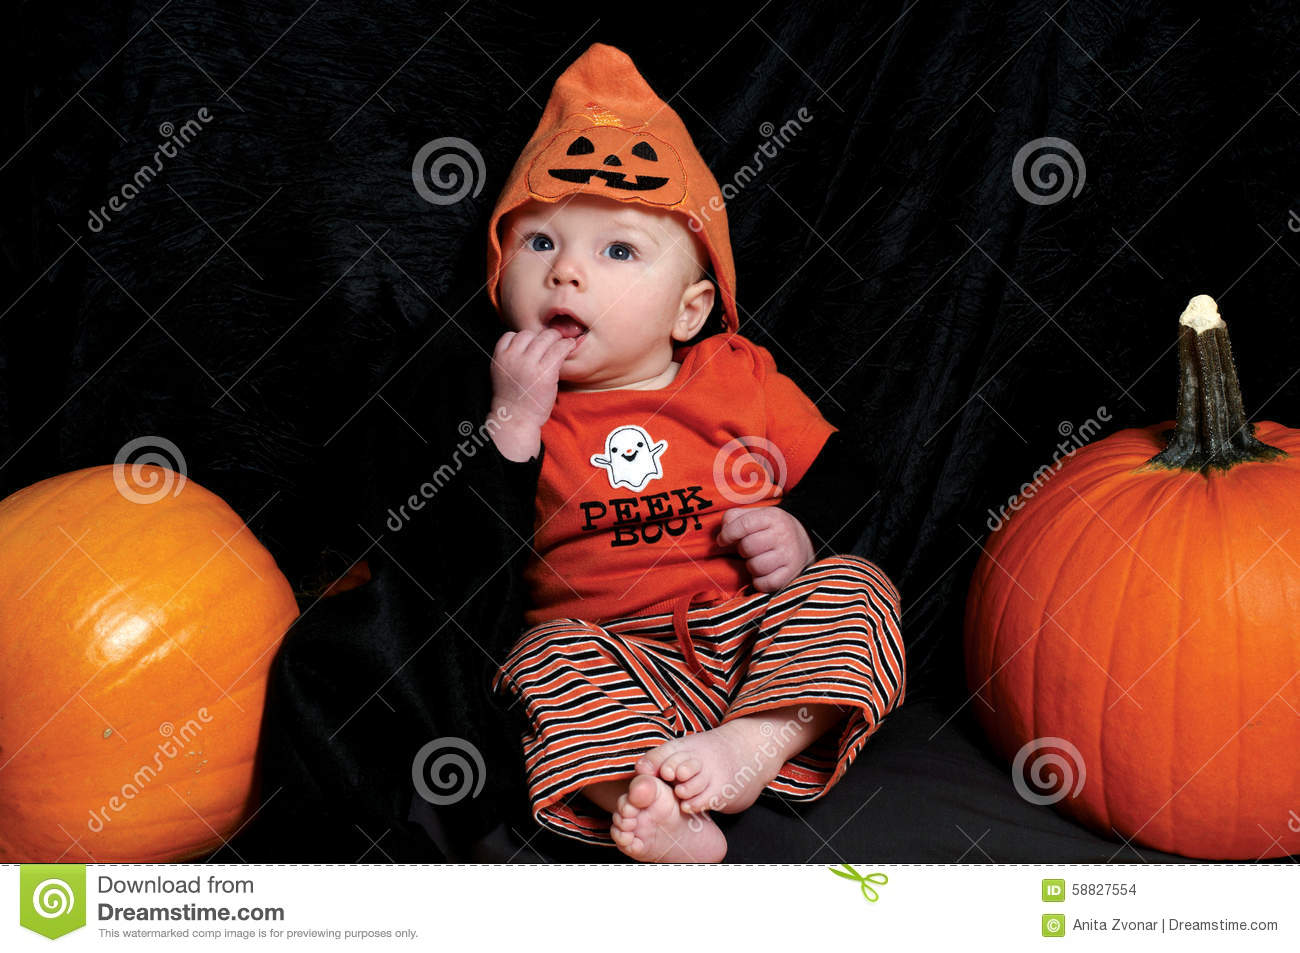 baby dressed up on halloween with pumpkins stock photo - image of